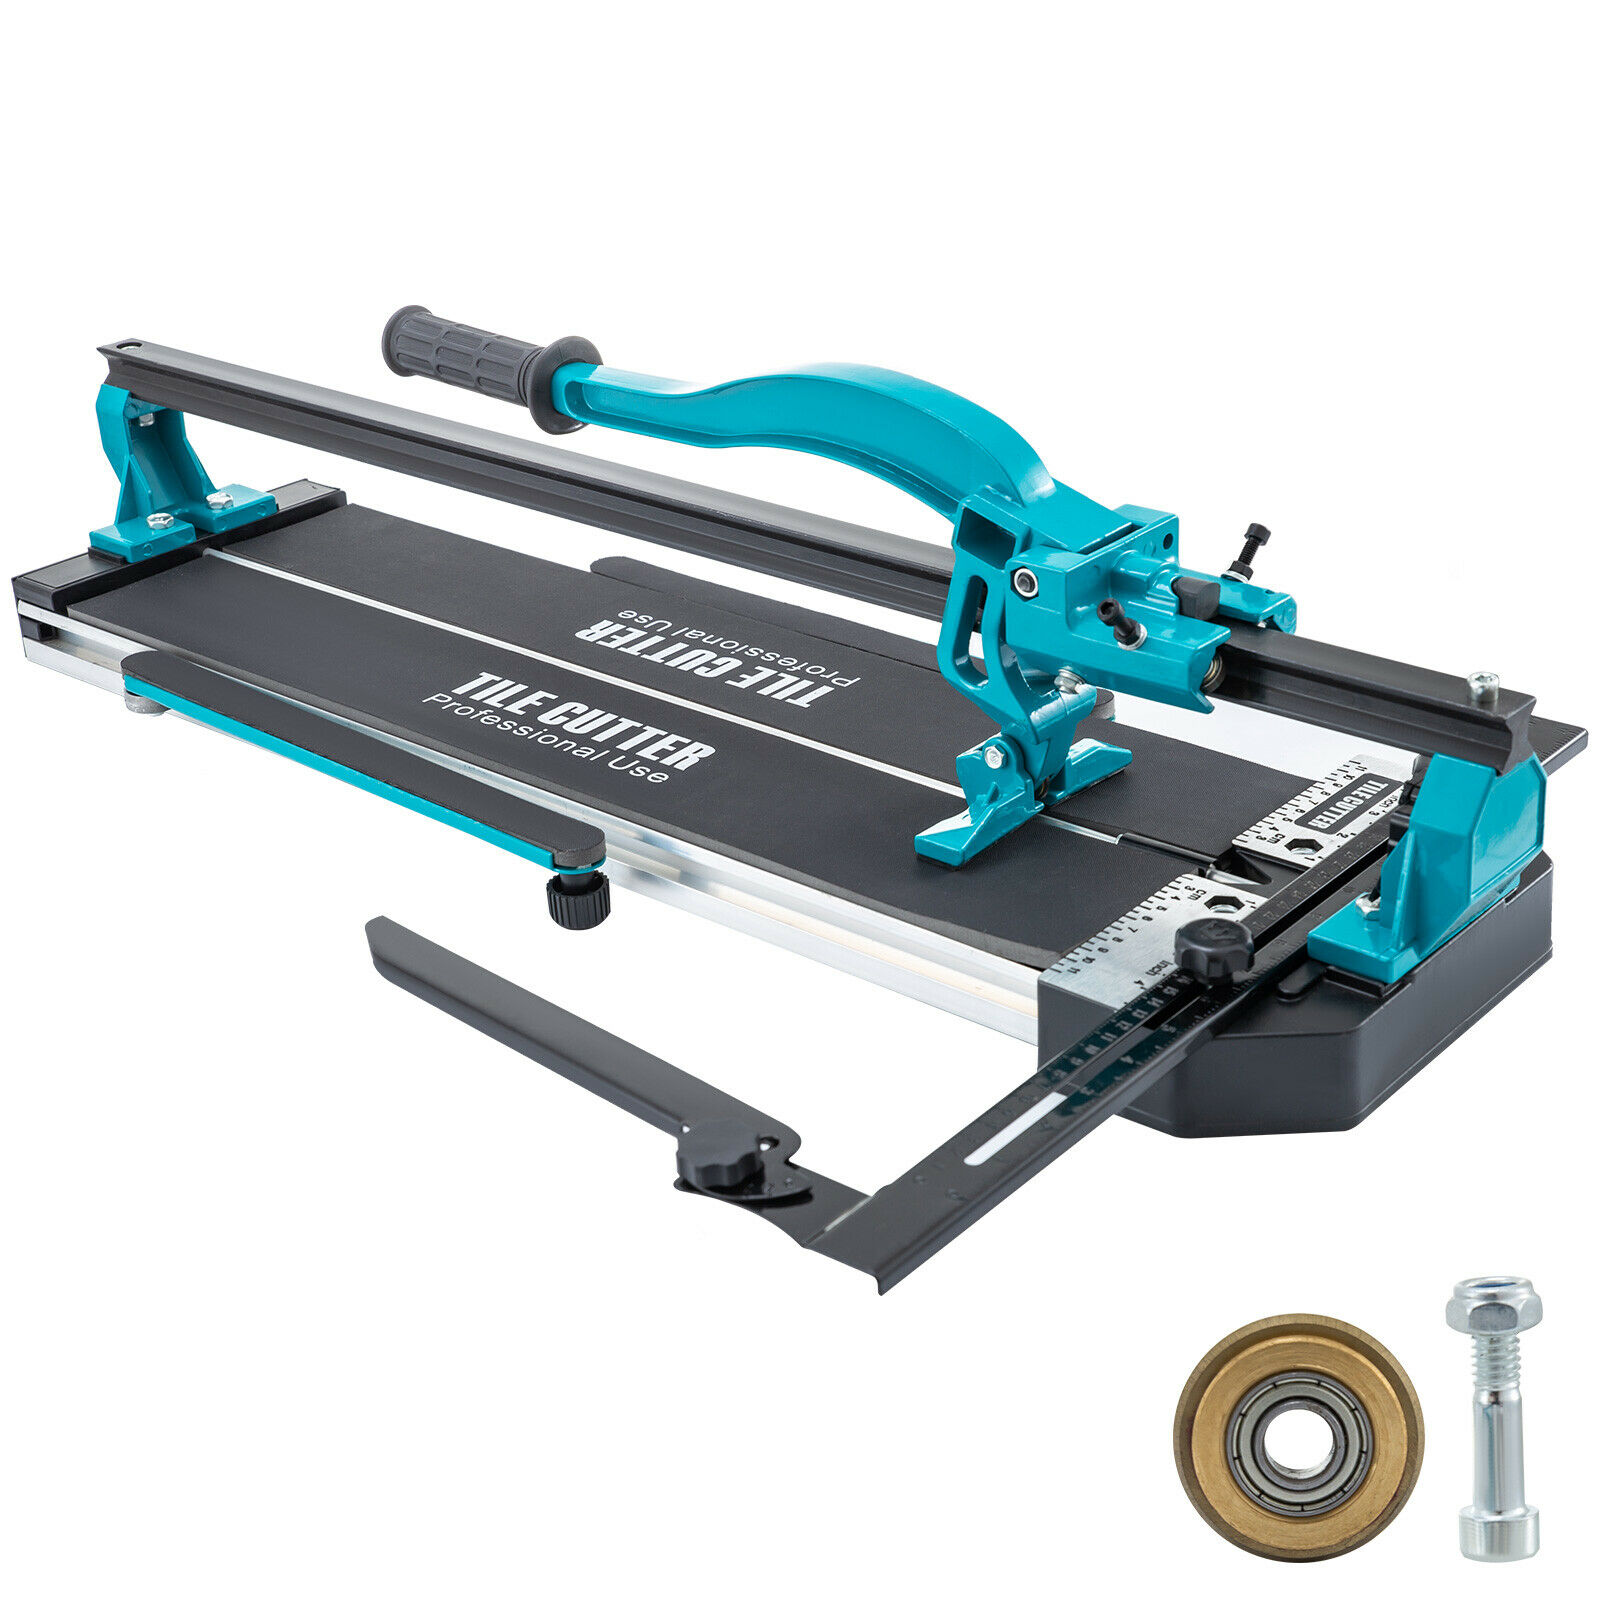 VEVOR Tile Cutter 35mm-1200mm Manual Tile Cutter Ceramic Cutter with Stand Laser Tile Cutting Machin